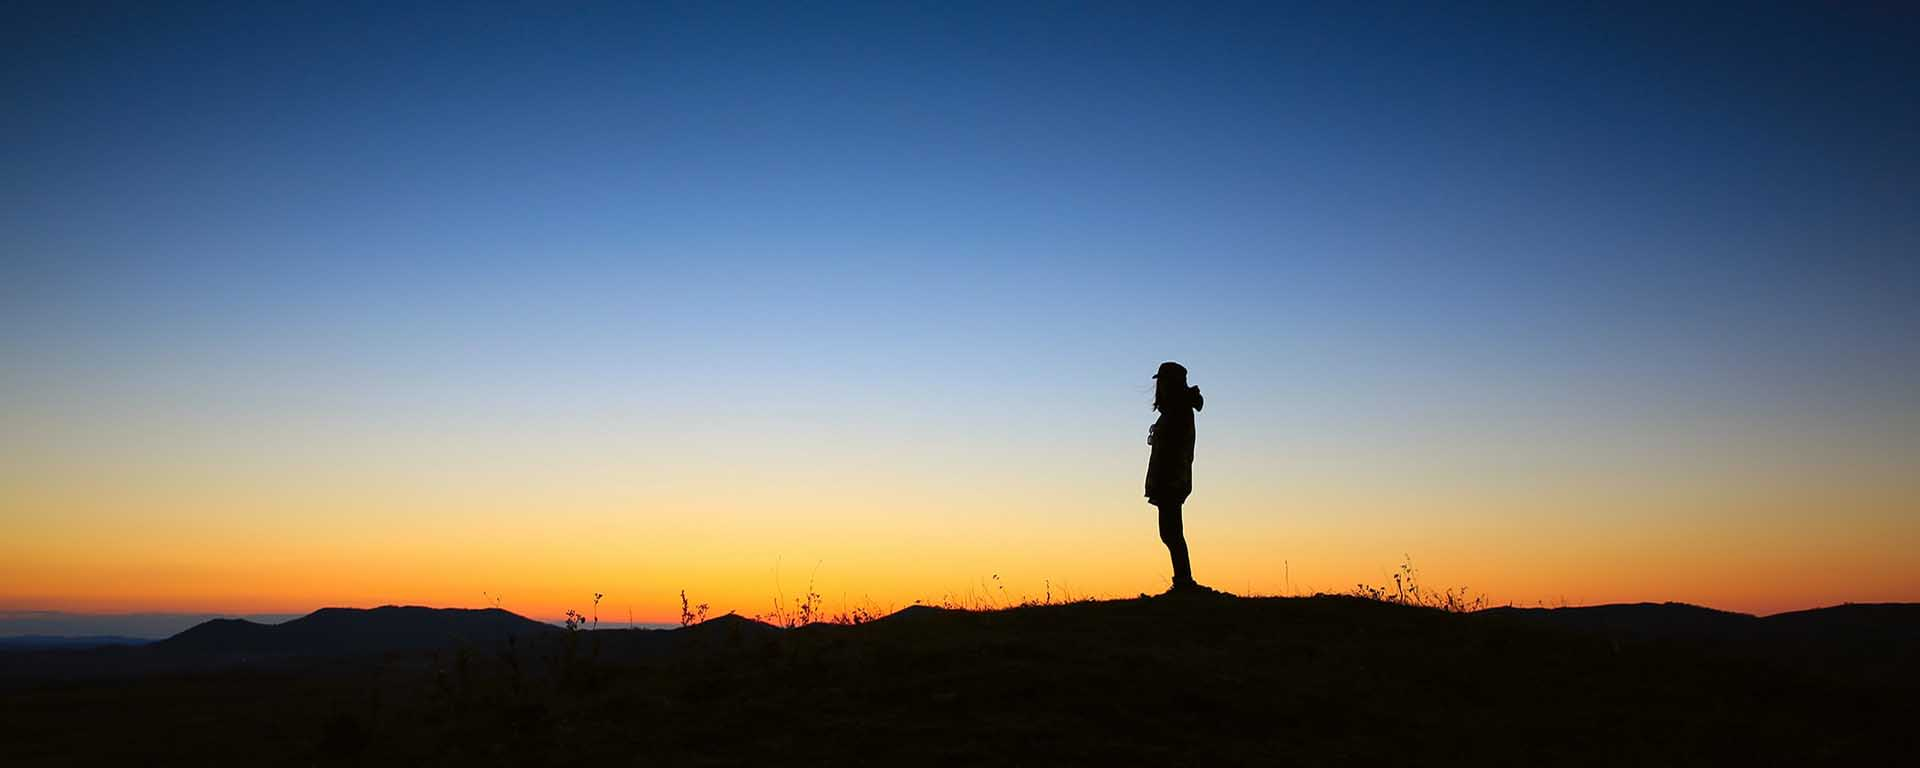 A person stands in the far horizon at dusk